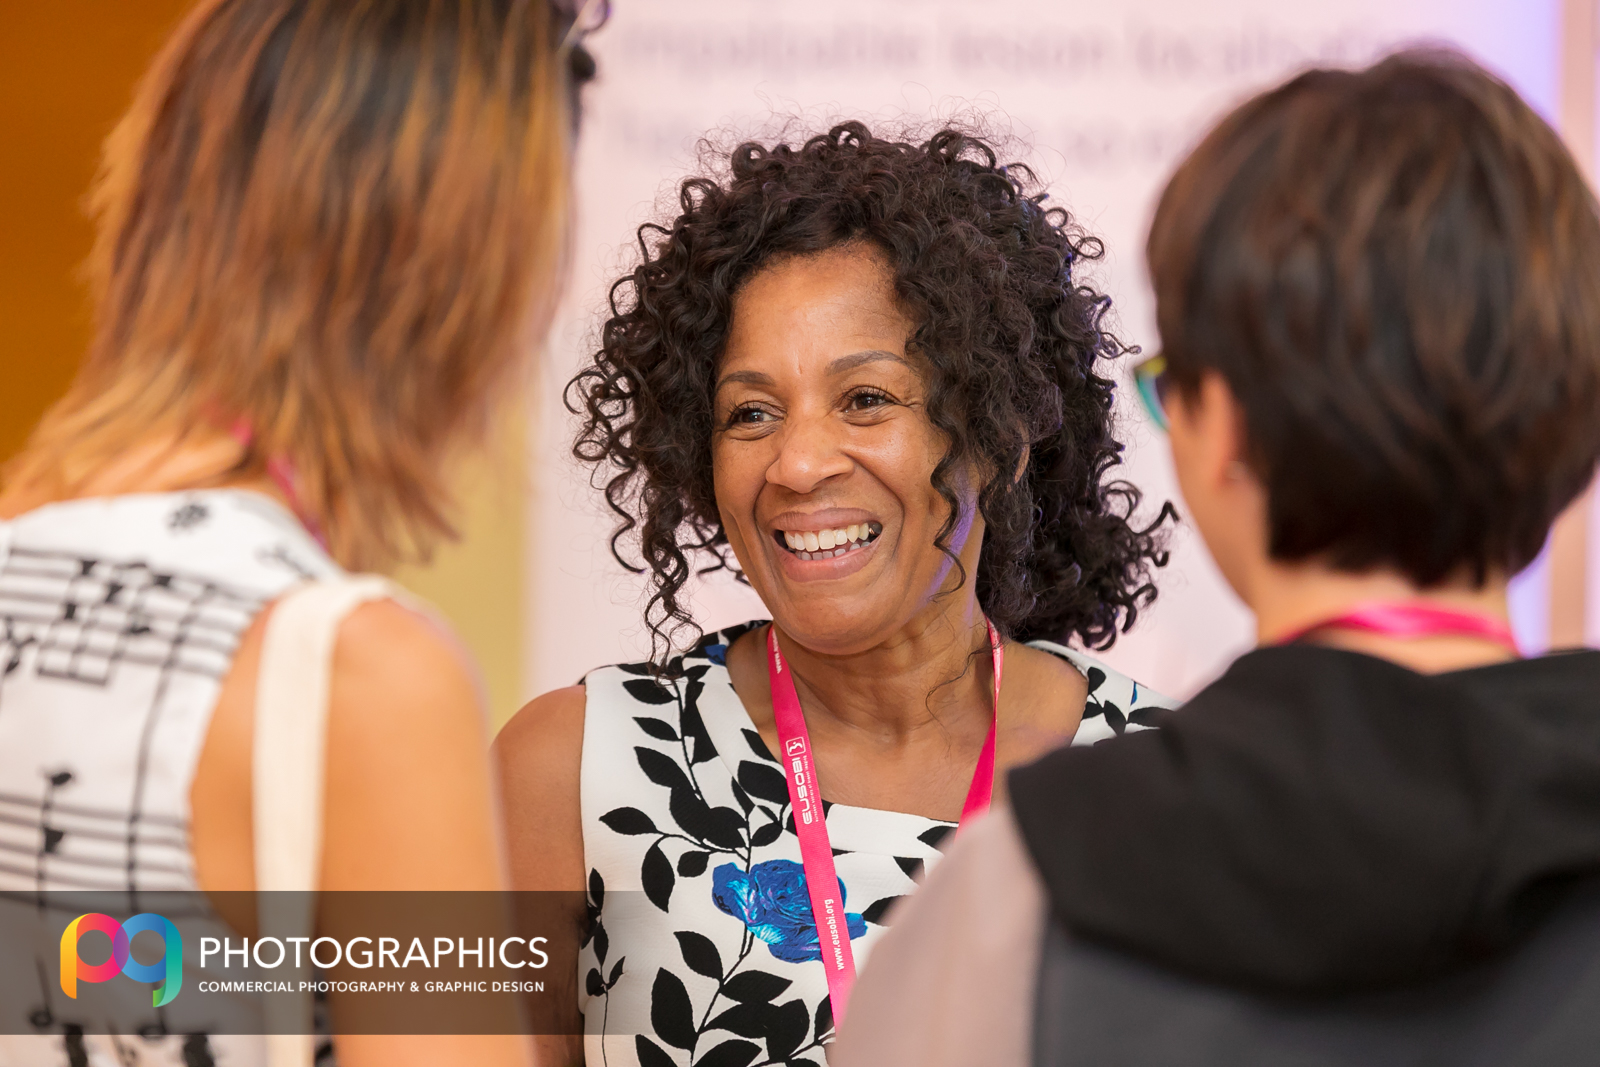 Conference-event-photography-glasgow-edinburgh-athens-4.jpg